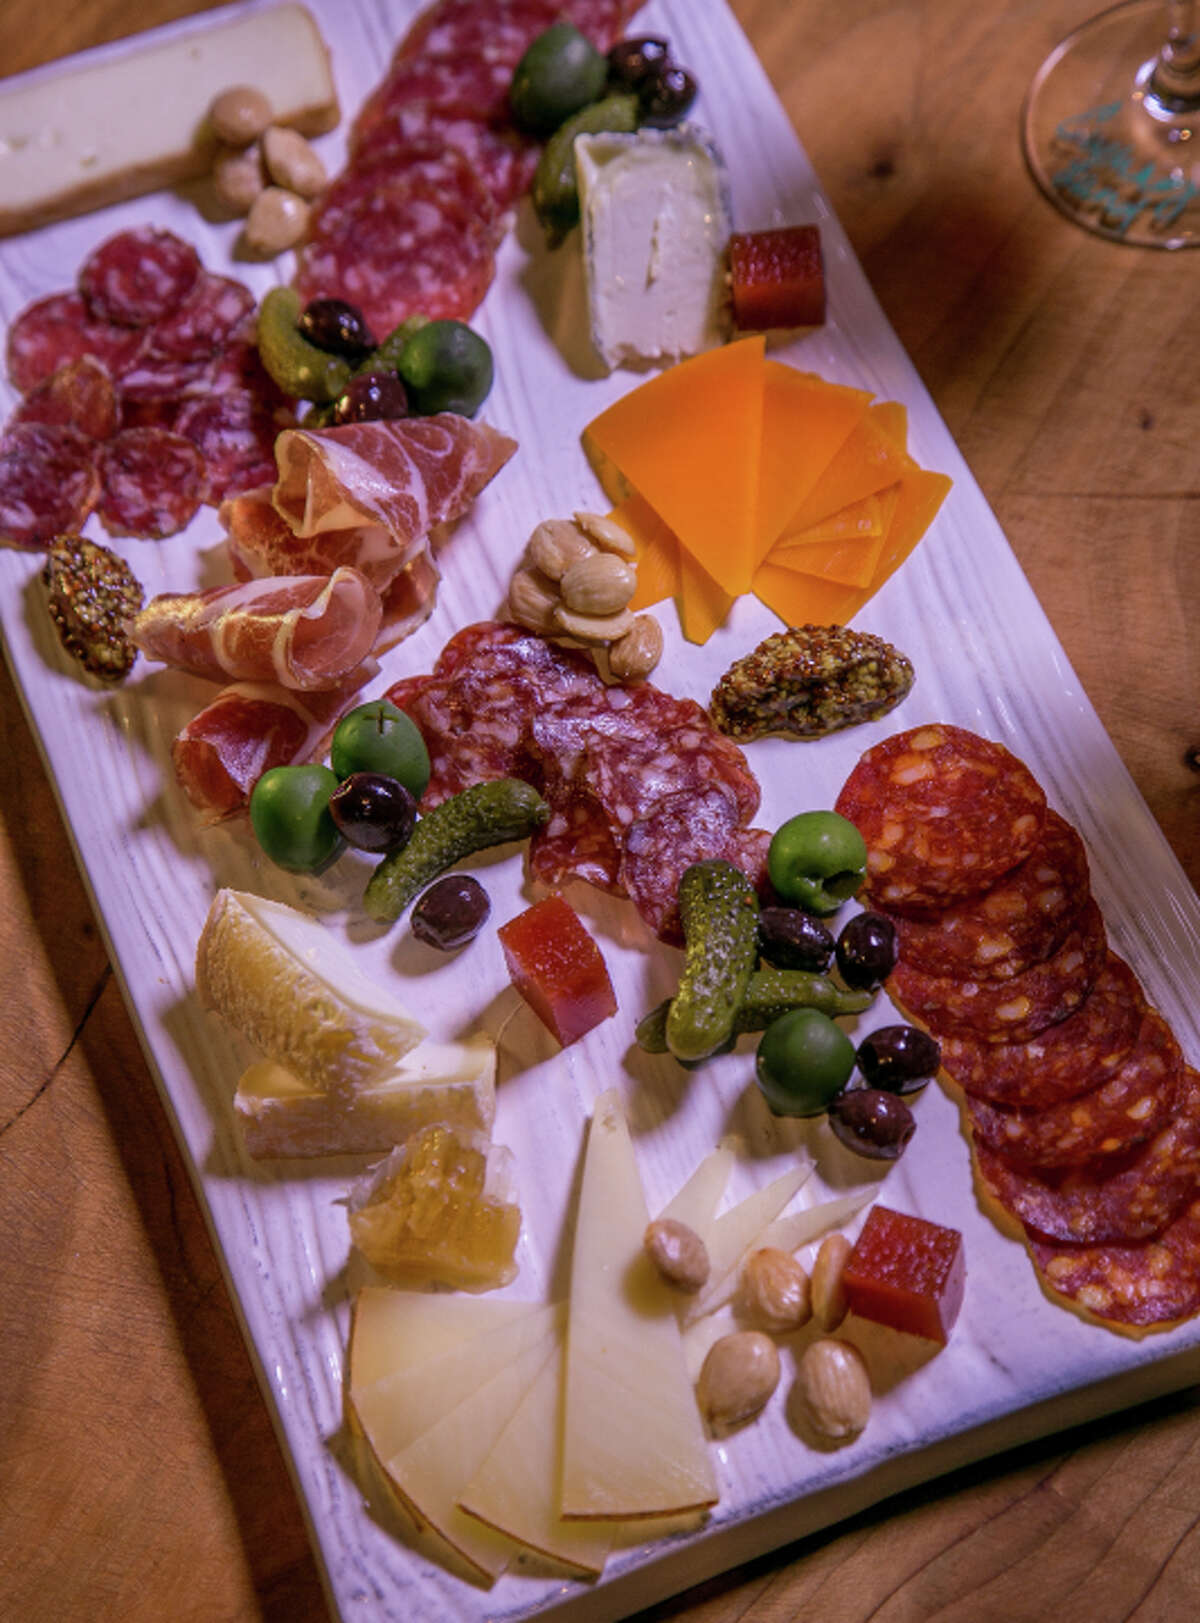 The charcuterie plate at Les Clos comes in a striking presentation, with the meats changing regularly.